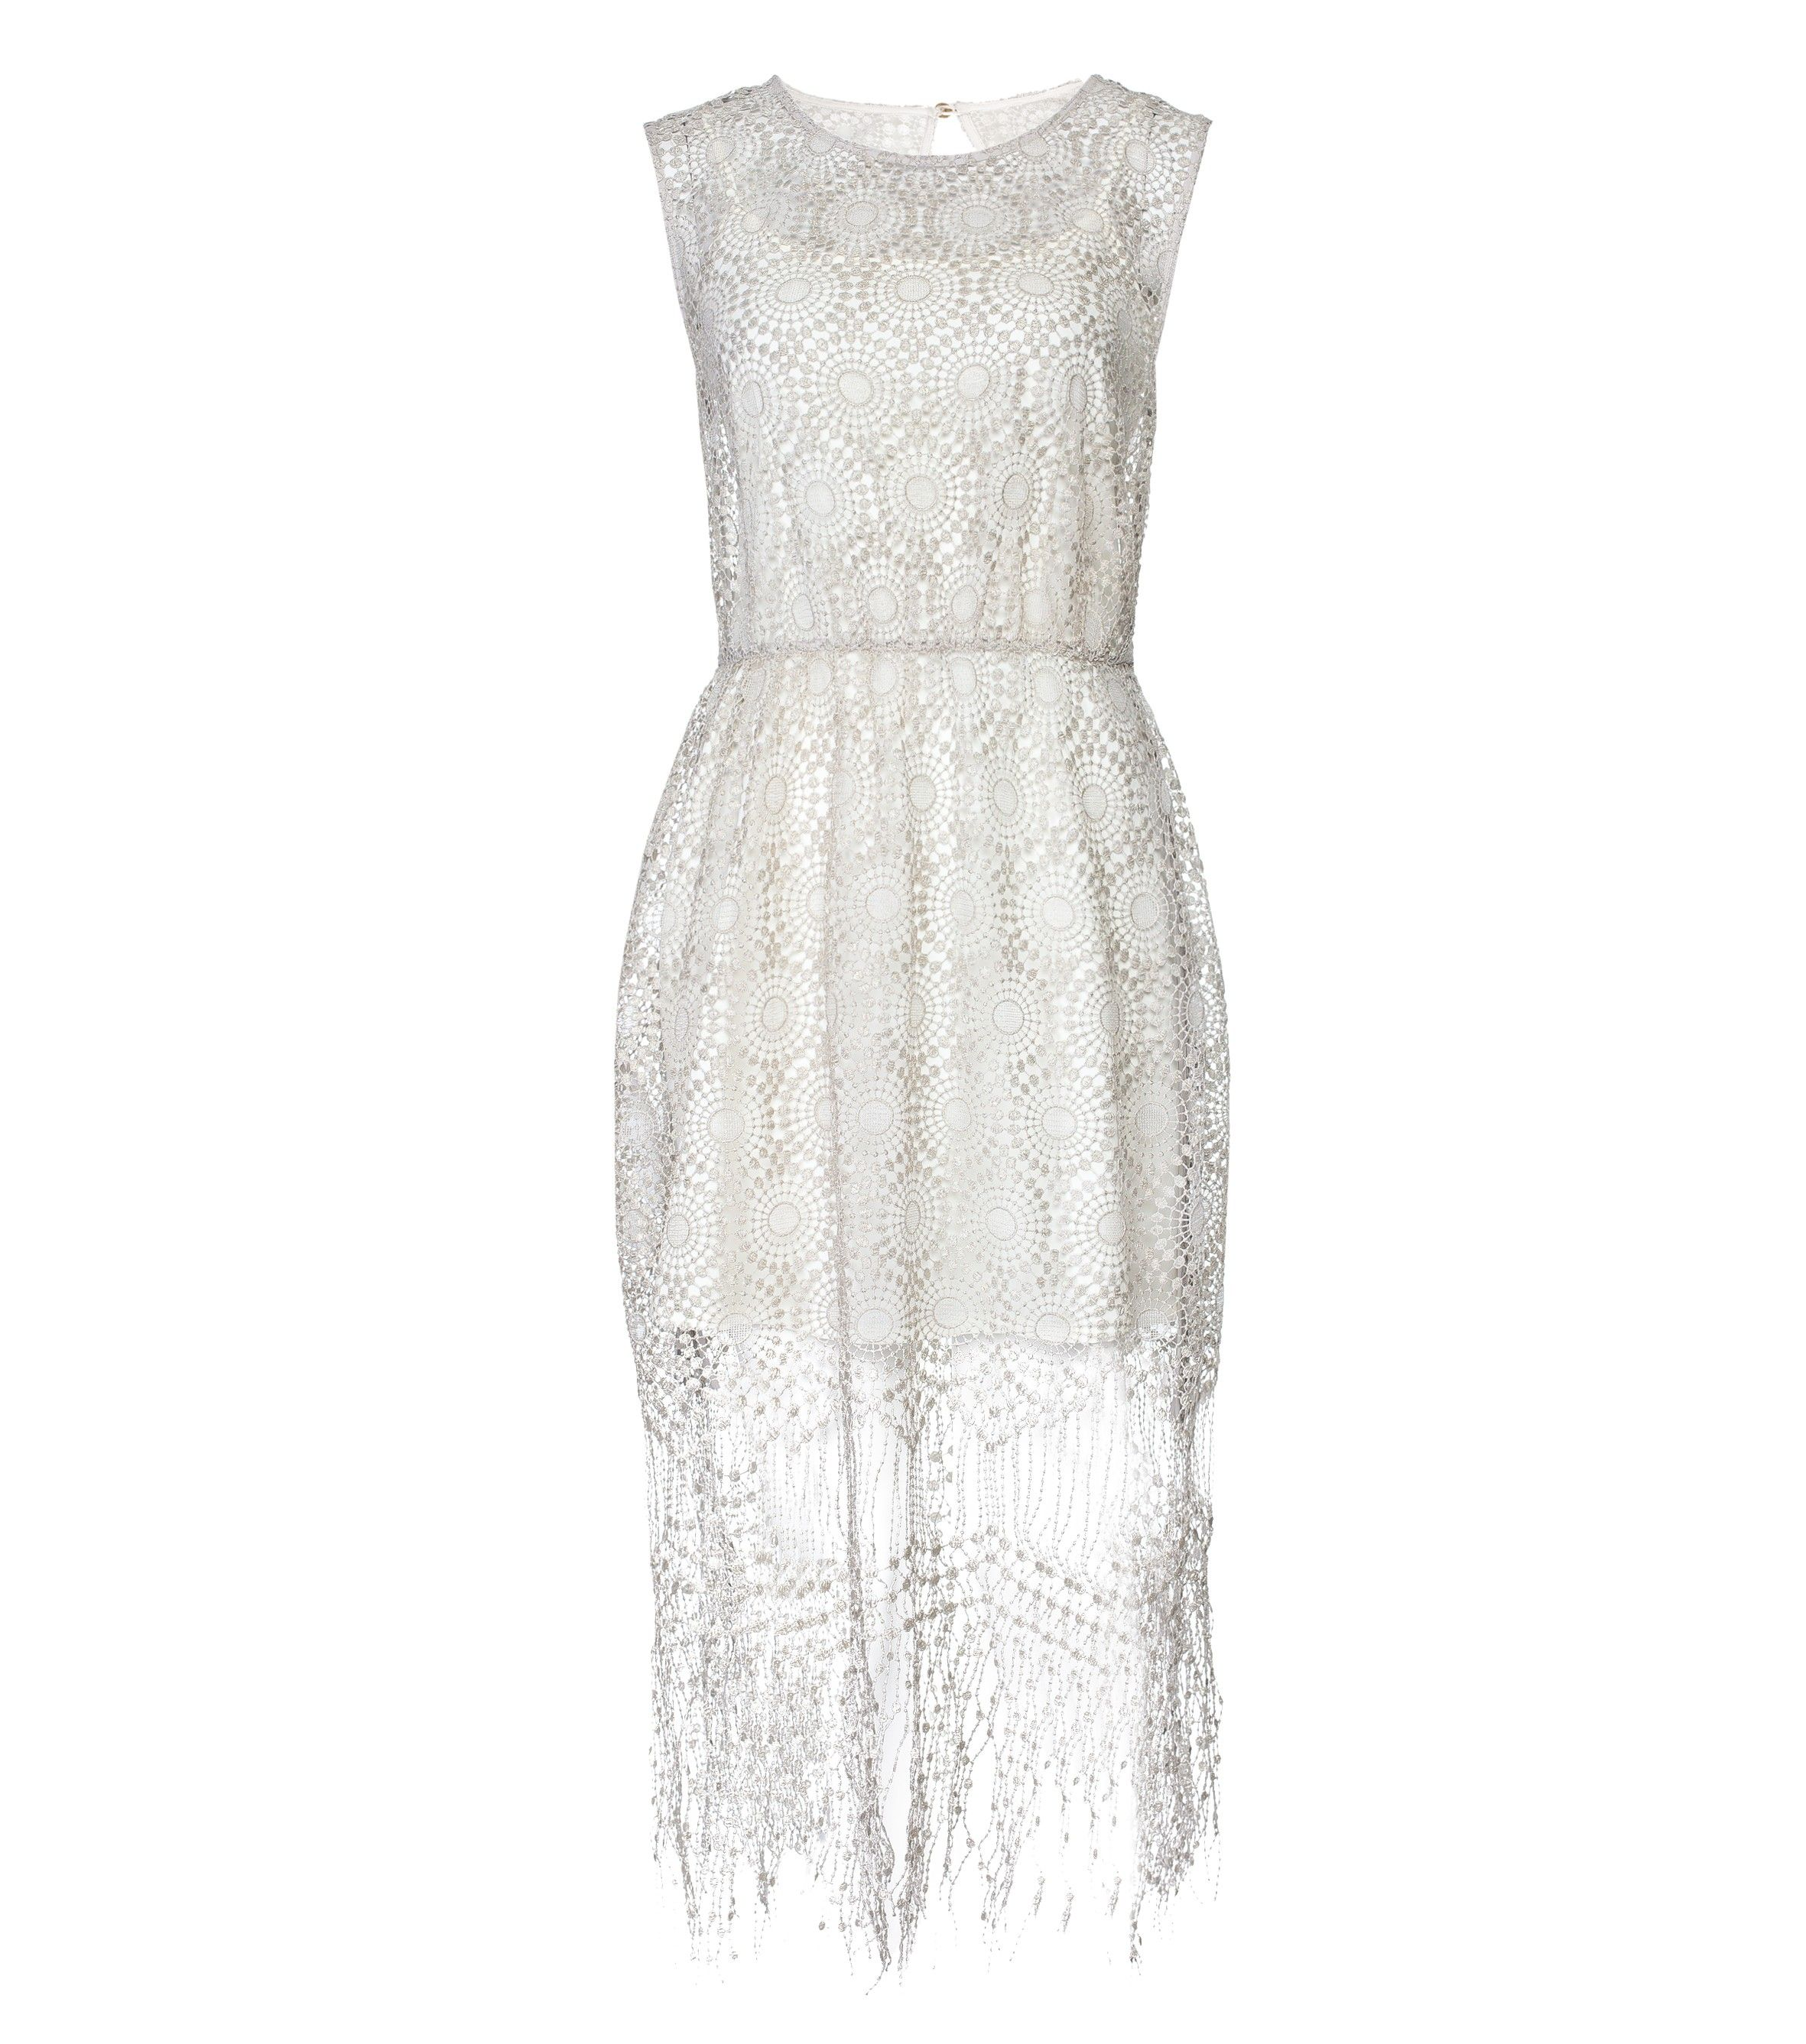 Alannah hill monte carlo pantheon dress http shop alannahhill com